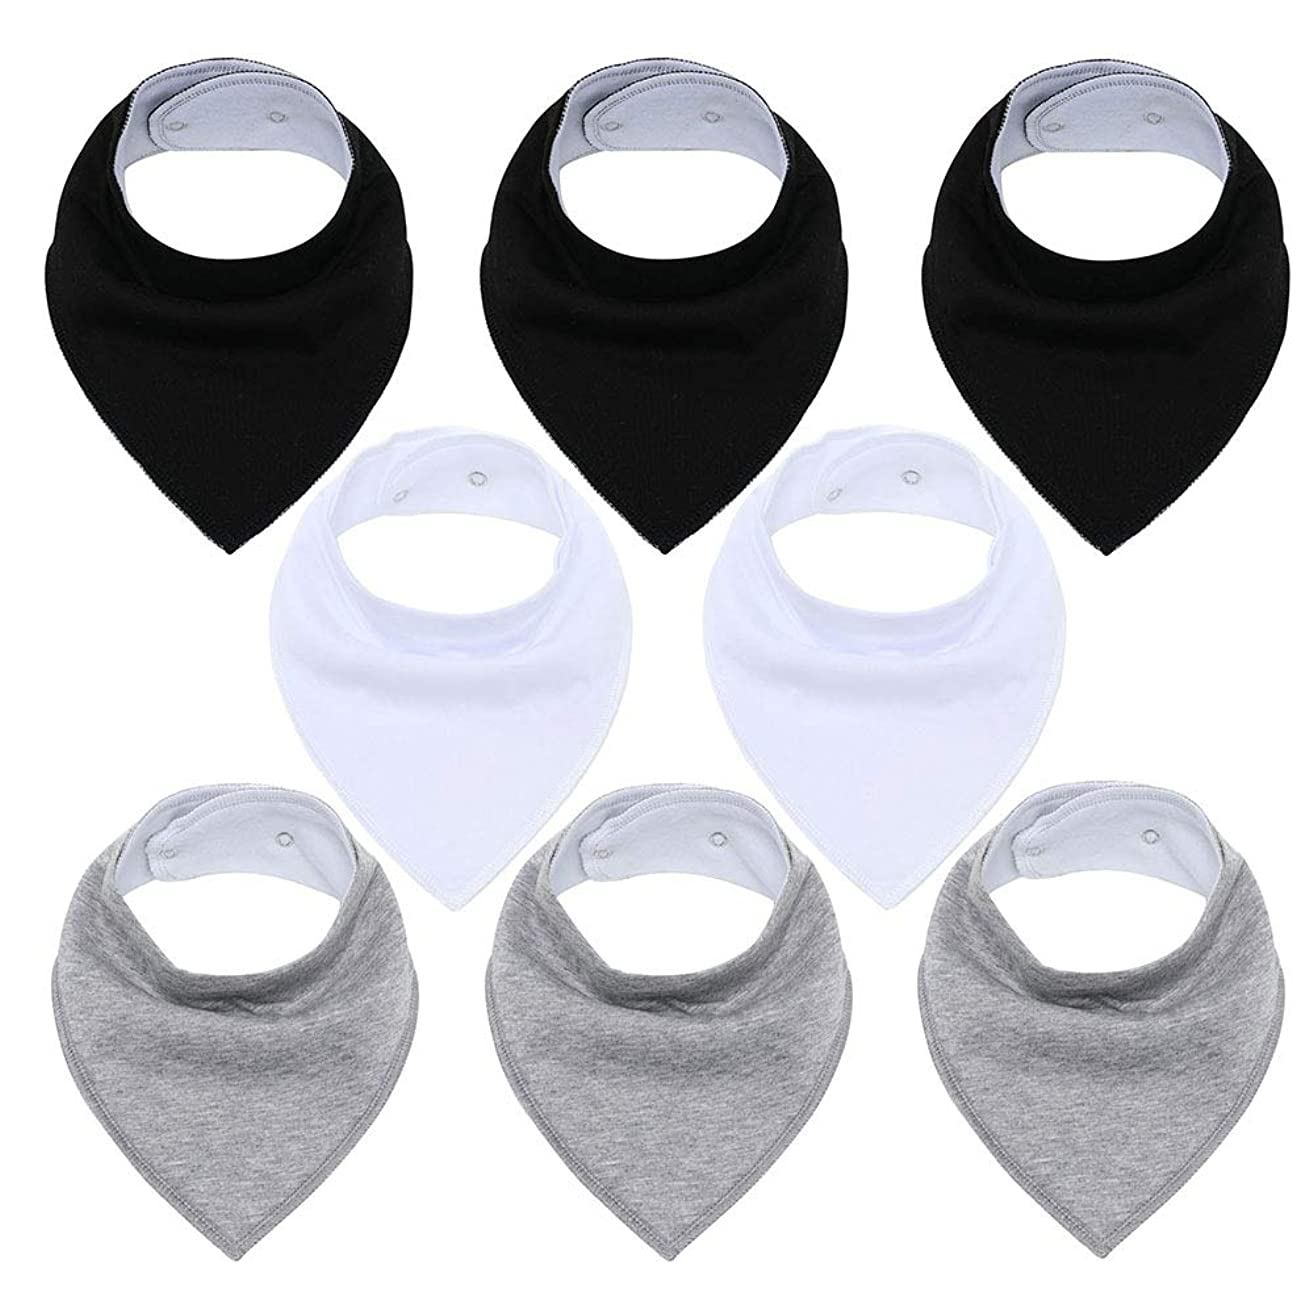 Egmao Baby Bandana Drool Bibs Unisex for Teething and Drooling - 8 Pack with Adjustable Snap Super Soft Absorbent Cotton Bibs Toddler Baby Shower Gift for Boys & Girls